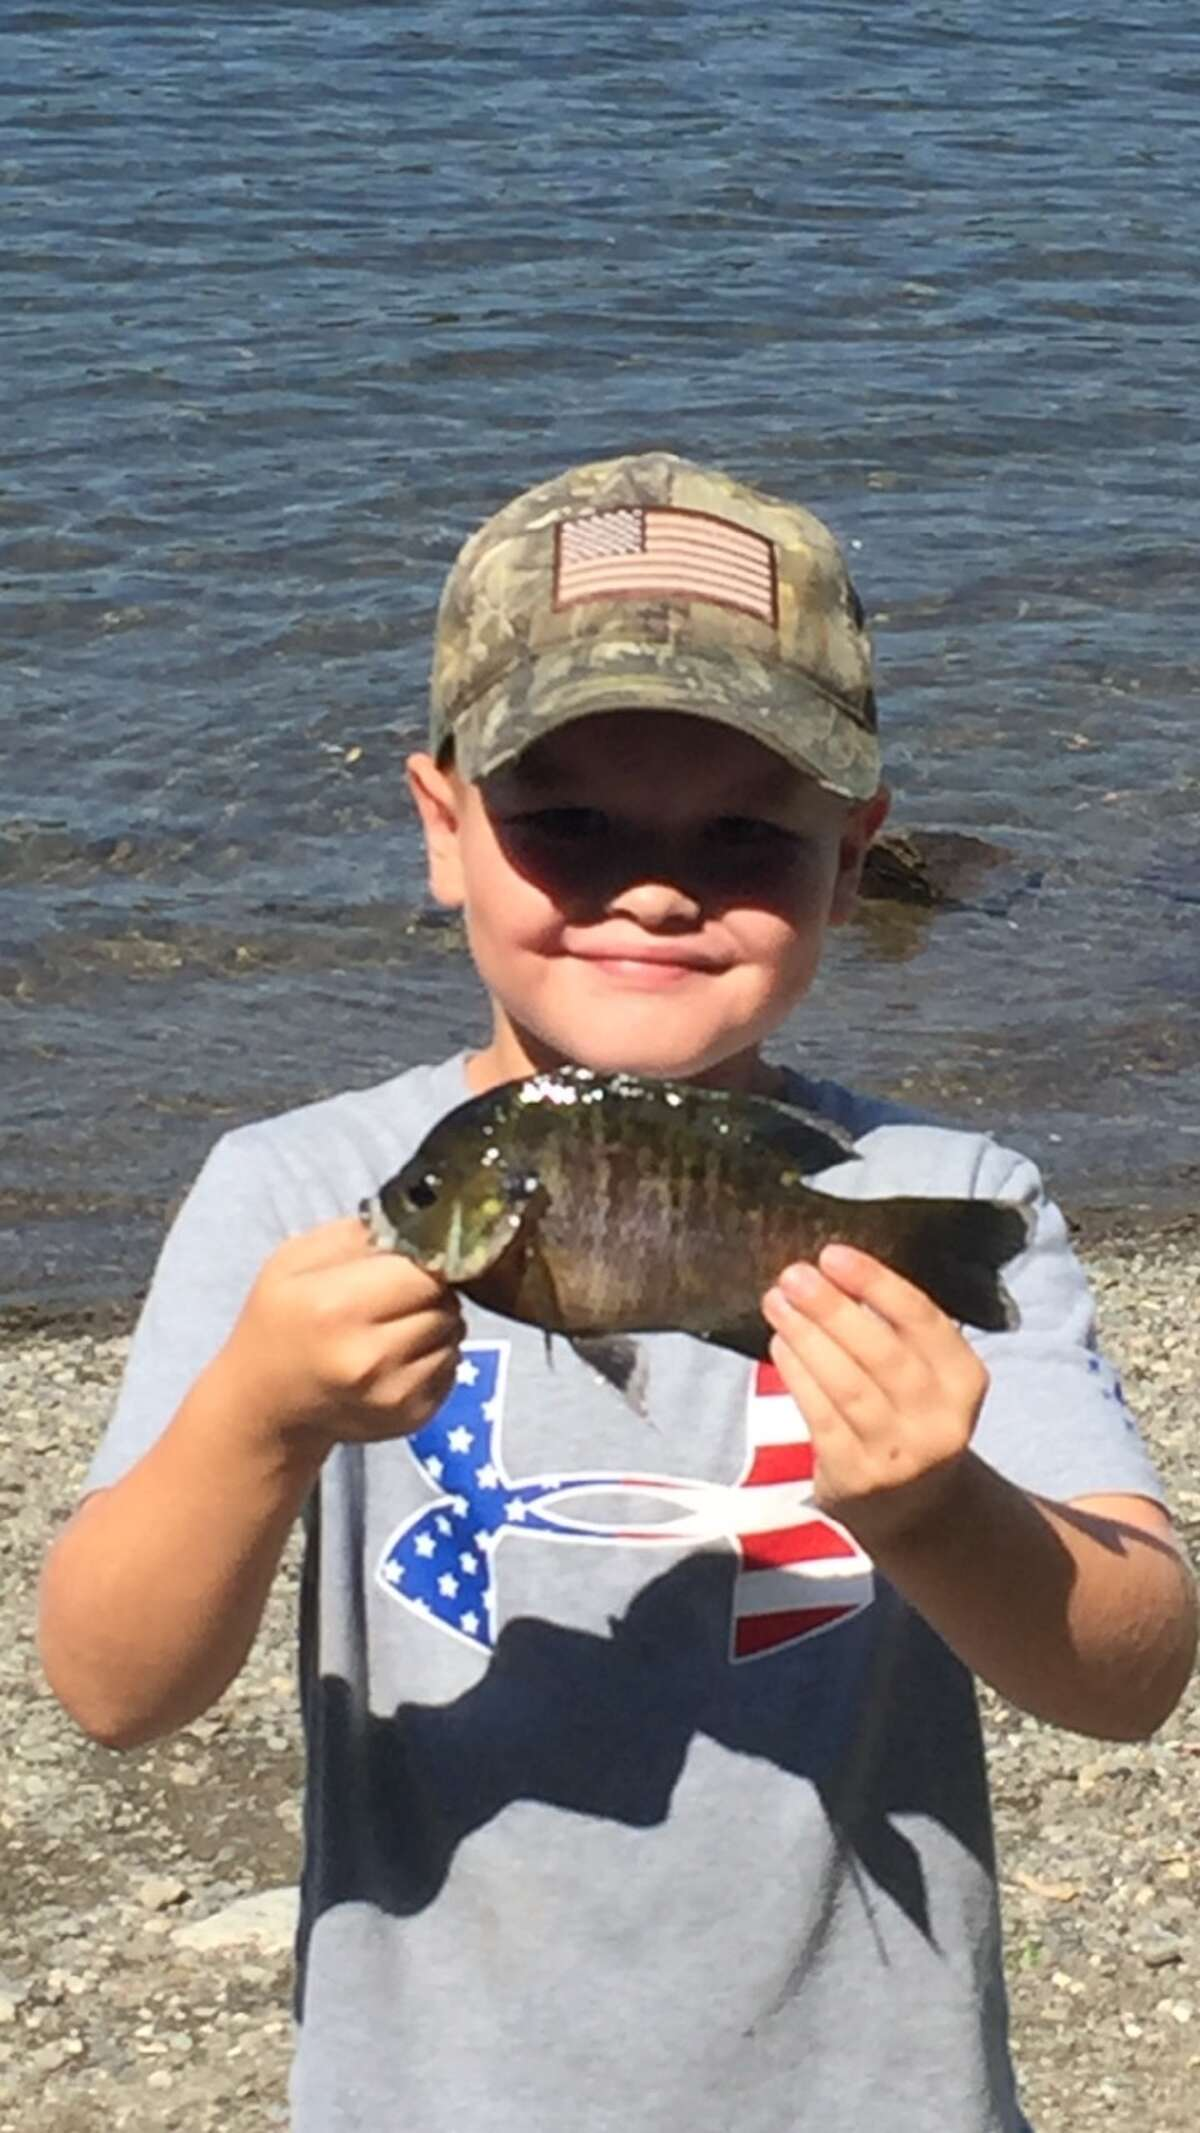 Nick Borden, 8, from Wynantskill, NY with a nice bluegill he caught in Long Pond in Grafton on Aug. 11, 2020